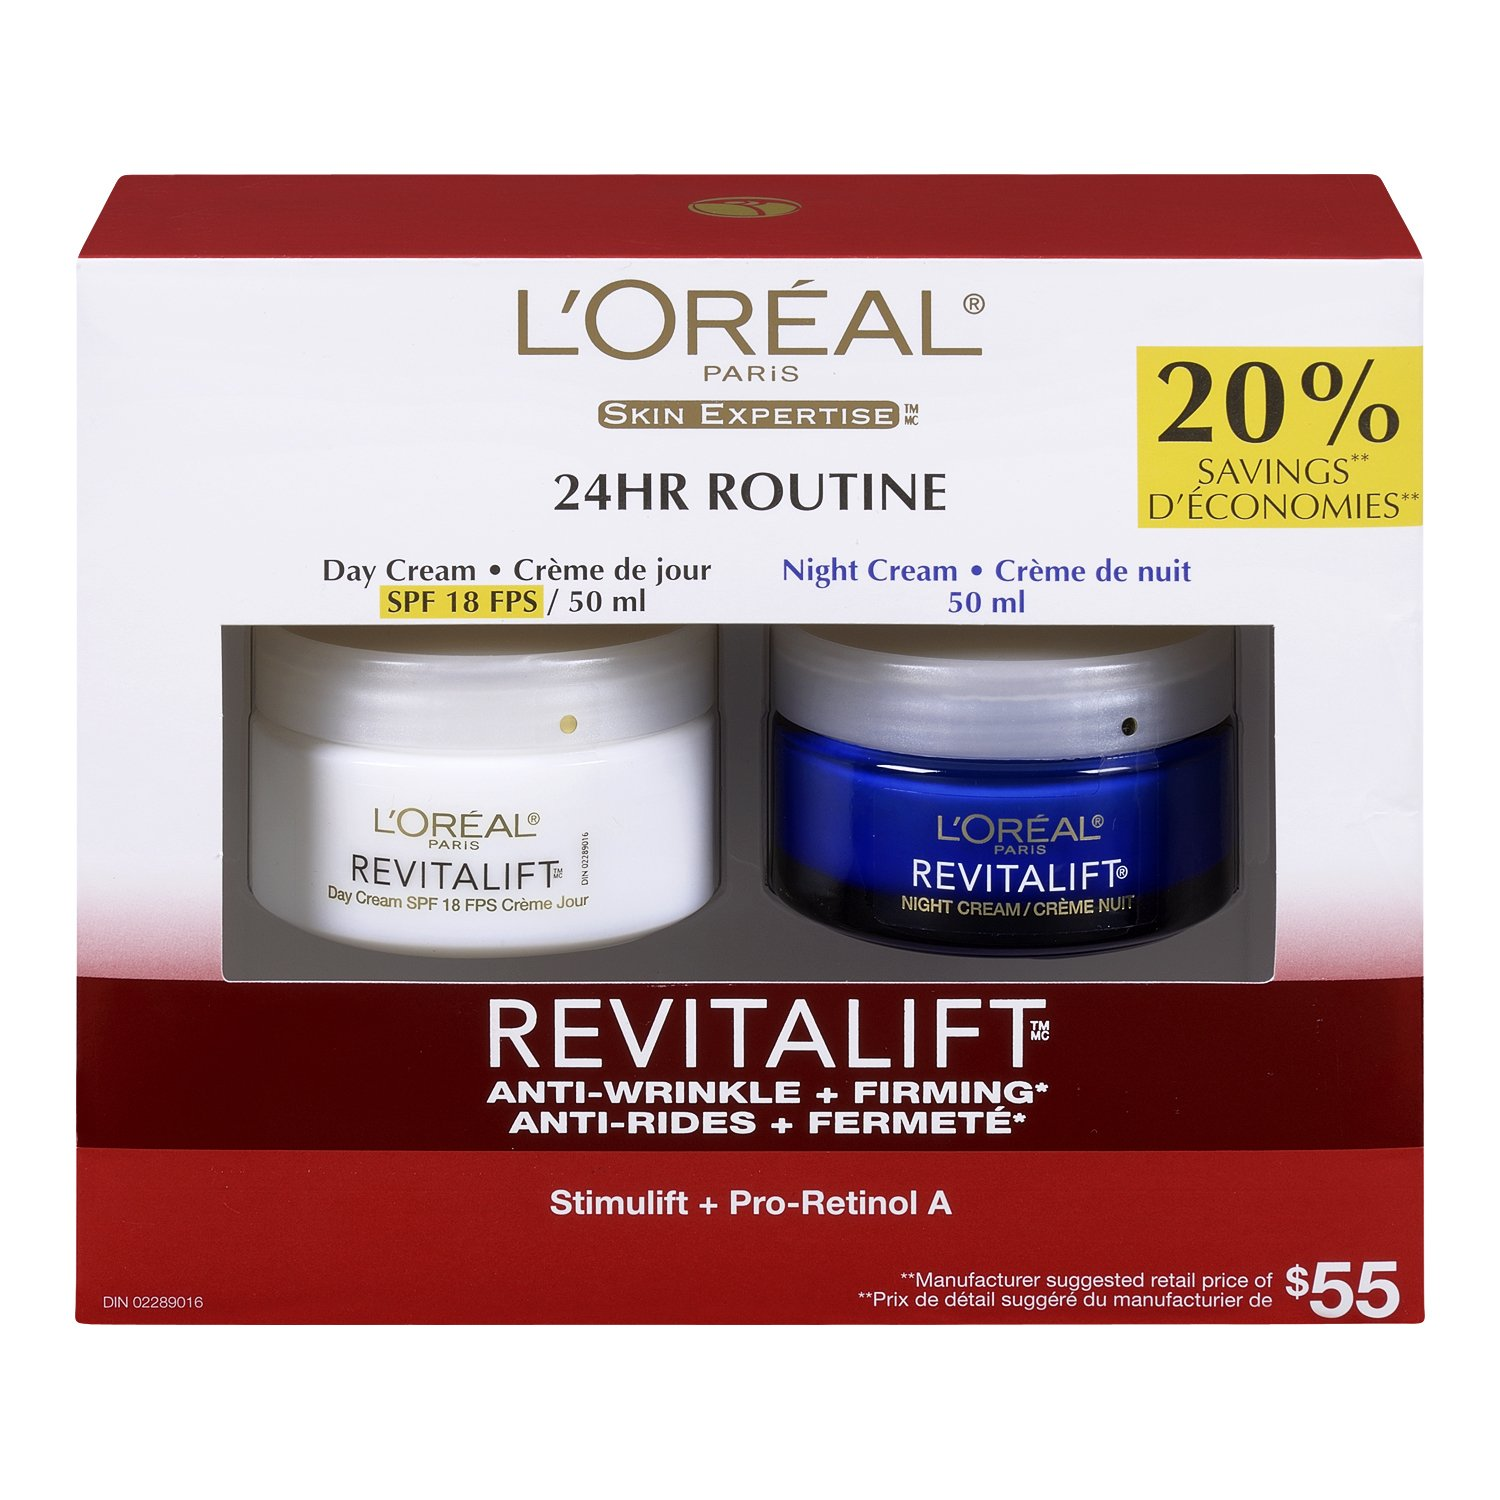 L'Oreal Paris Revitalift Anti-Wrinkle + Firming Anti-Aging Cream Day & Night Moisturizers , with Pro-Retinol & Centella Asiatica, 2x50 mL L'Oreal Paris